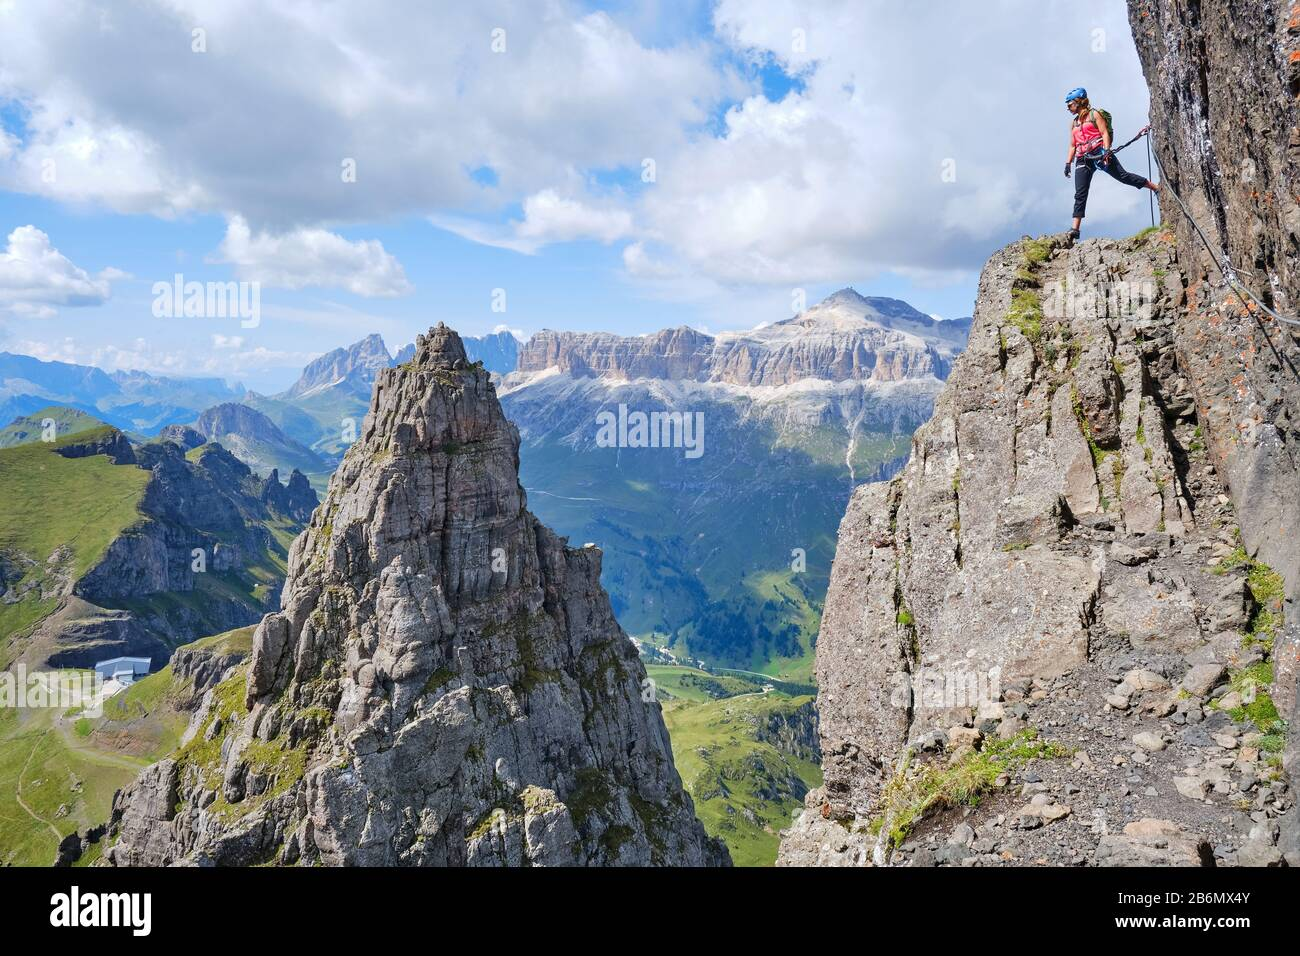 Woman on via ferrata Delle Trincee (meaning Way of the trenches), high above impressive pointy rock peak, with Sella group in the distance as backgrou Stock Photo